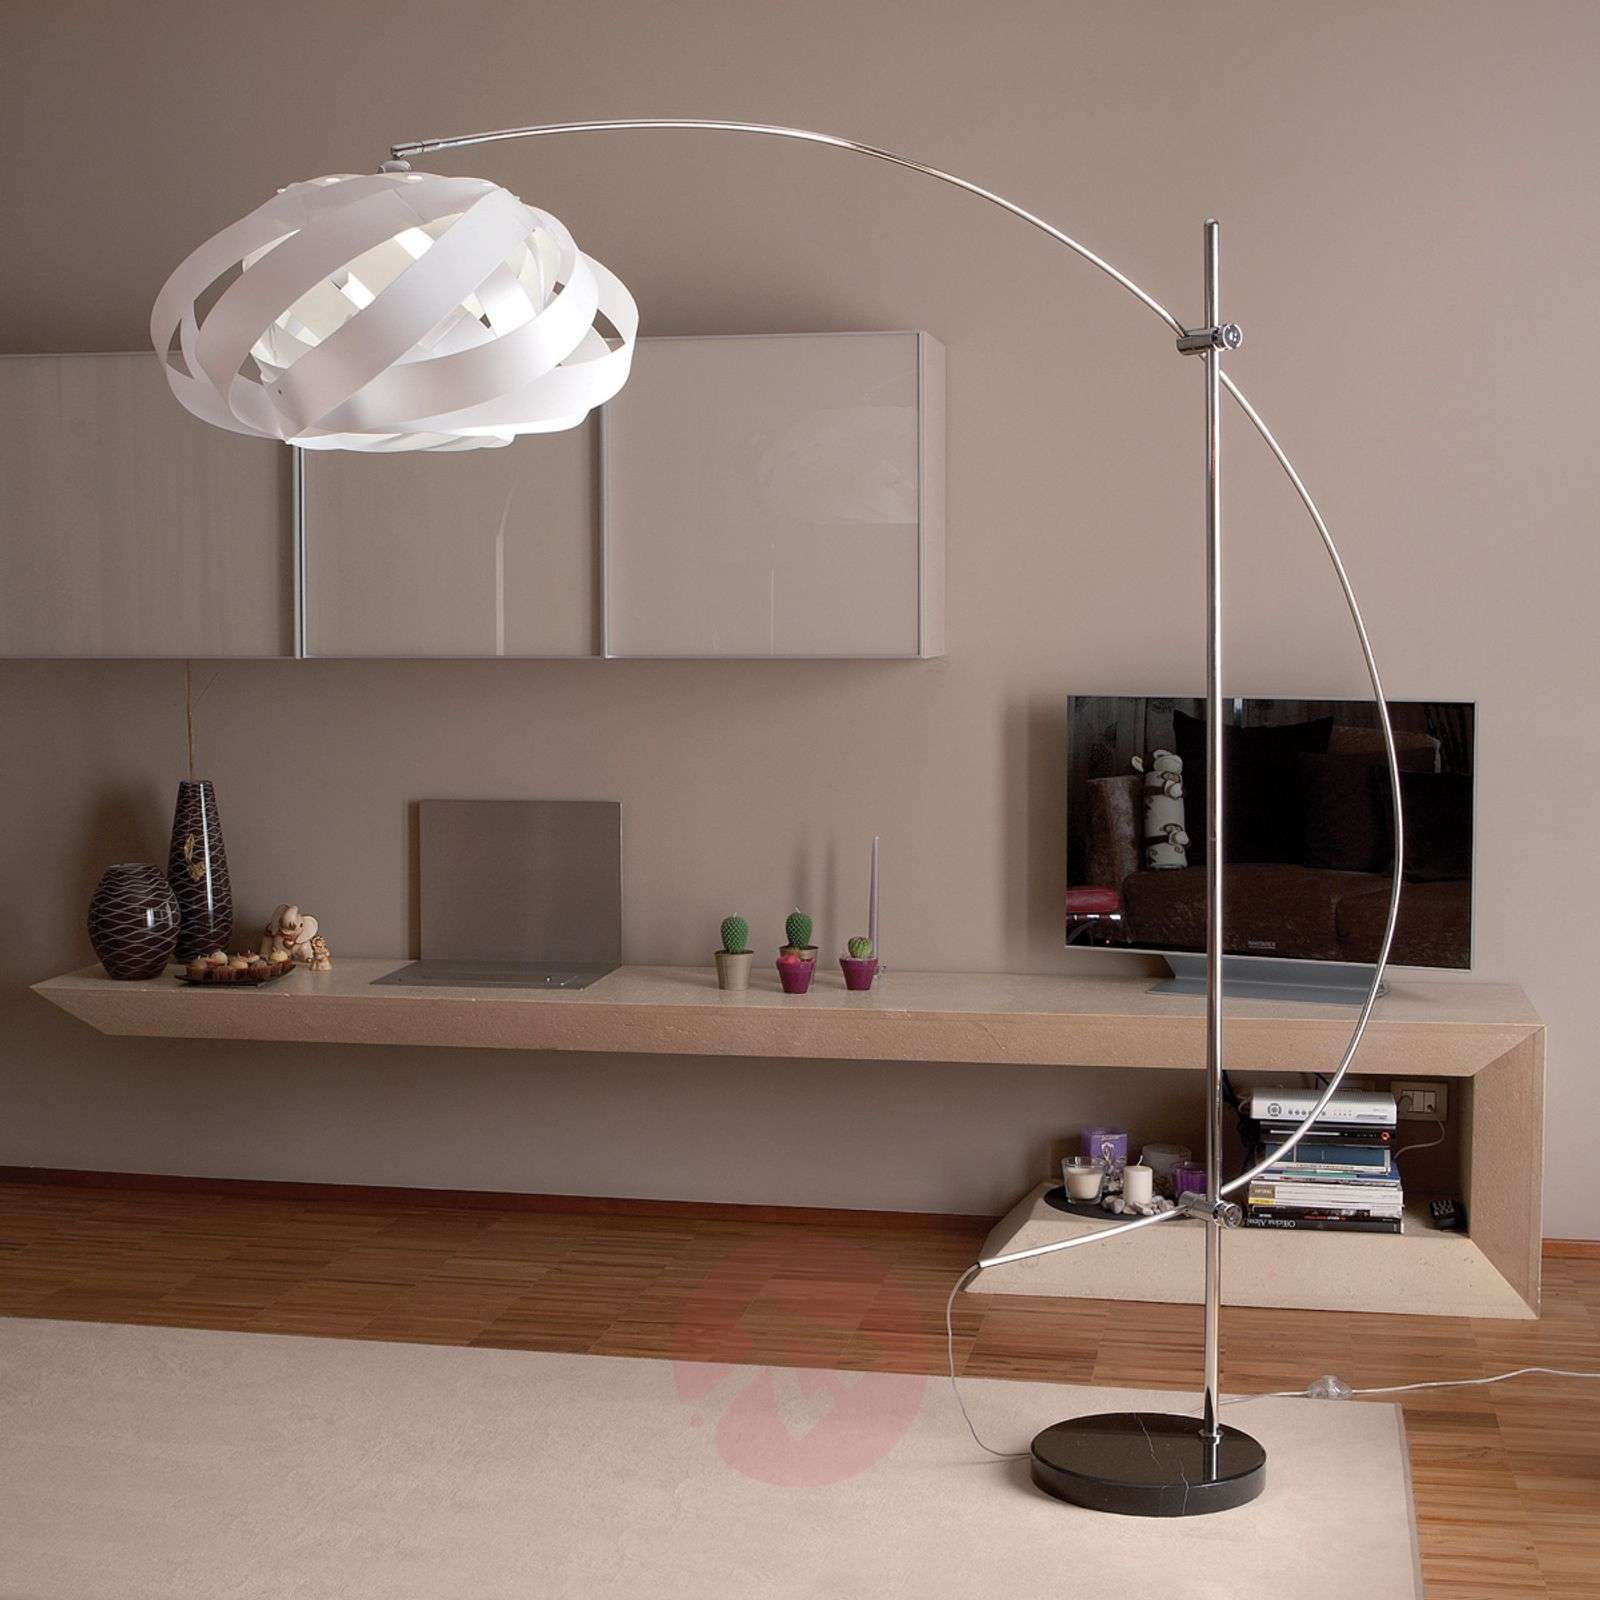 Arc lamp Plaza with a nest-shaped lampshade, white-1056040-01